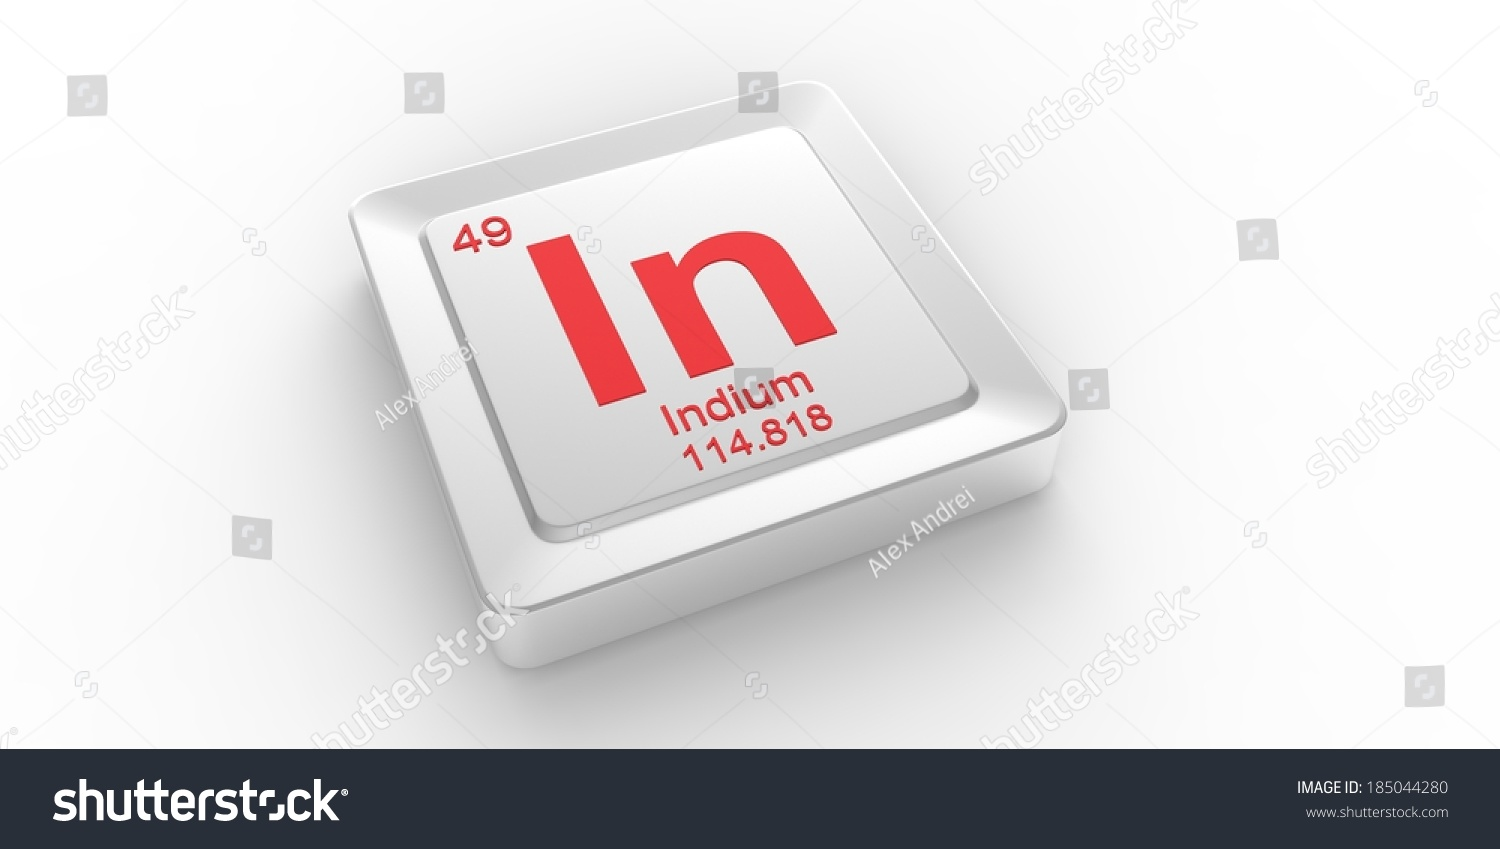 Symbol 49 material indium chemical element stock illustration in symbol 49 material for indium chemical element of the periodic table biocorpaavc Images